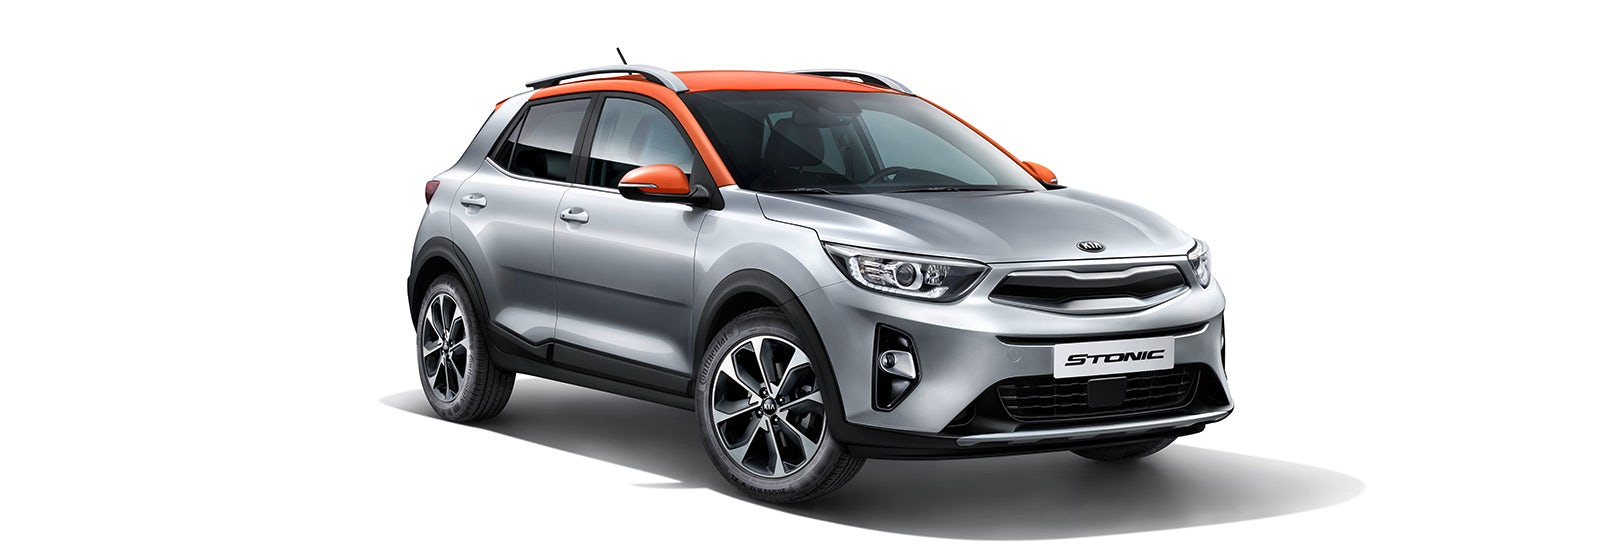 2018 kia stonic suv price specs and release date carwow. Black Bedroom Furniture Sets. Home Design Ideas